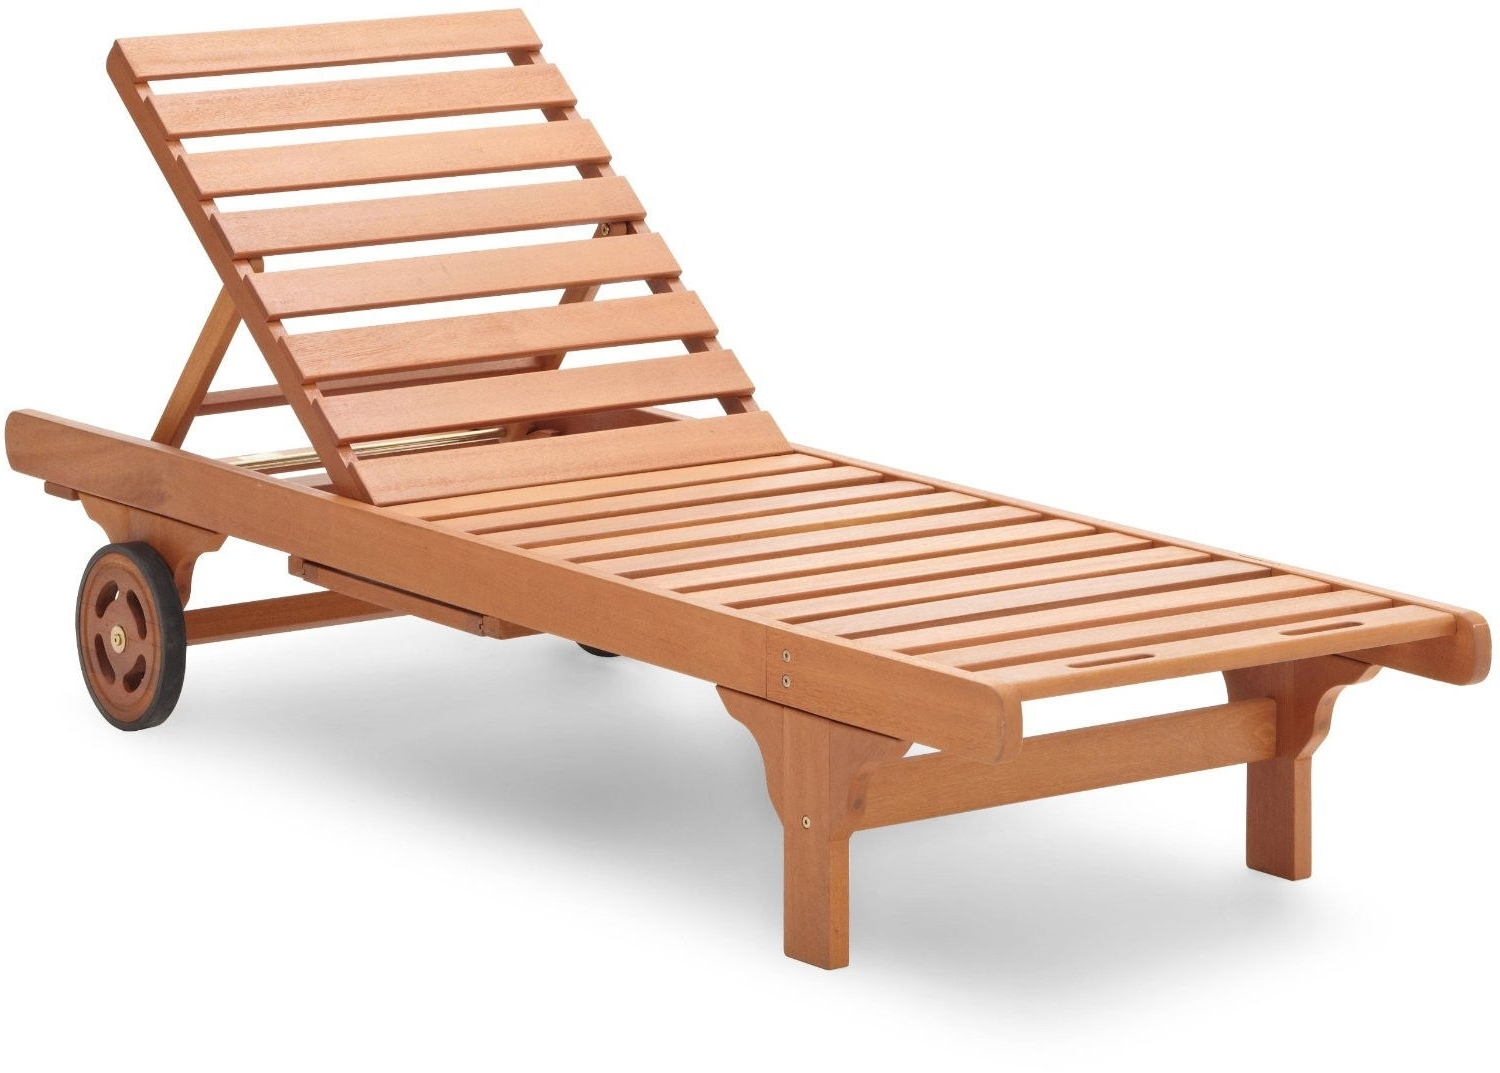 Newest Lakeport Outdoor Adjustable Chaise Lounge Chairs For Wood Chaise Lounge Chairs • Lounge Chairs Ideas (View 14 of 15)